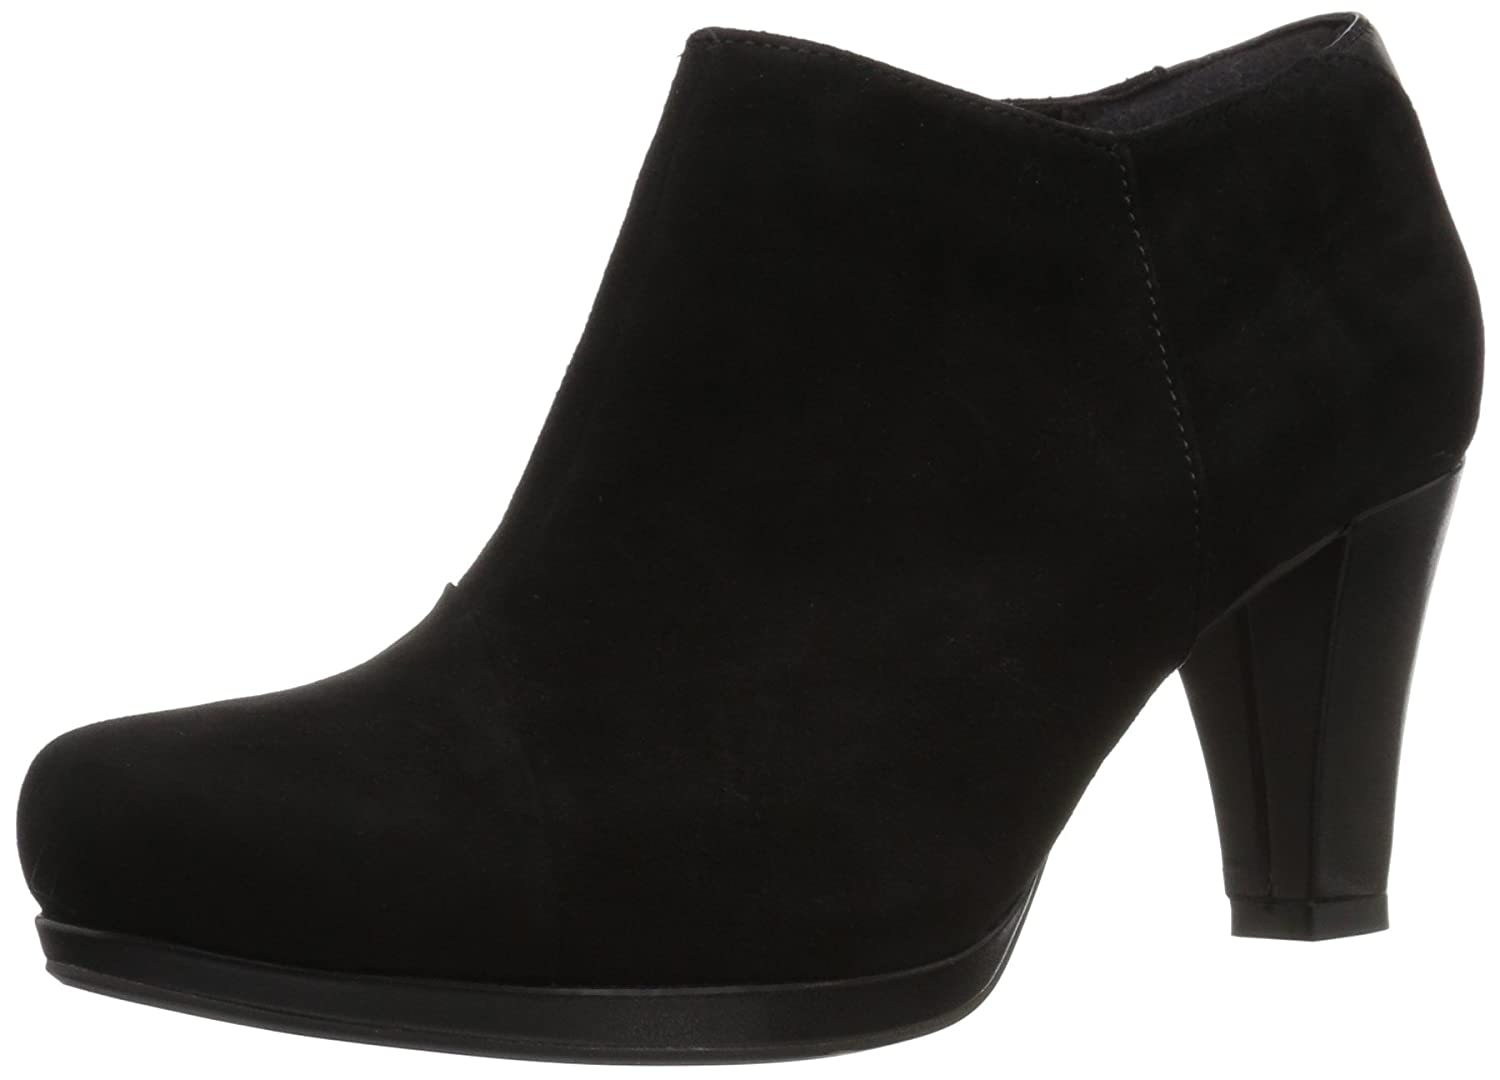 CLARKS Women's Chorus Jingle Ankle Bootie B01N9GNKC2 5 B(M) US|Black Suede